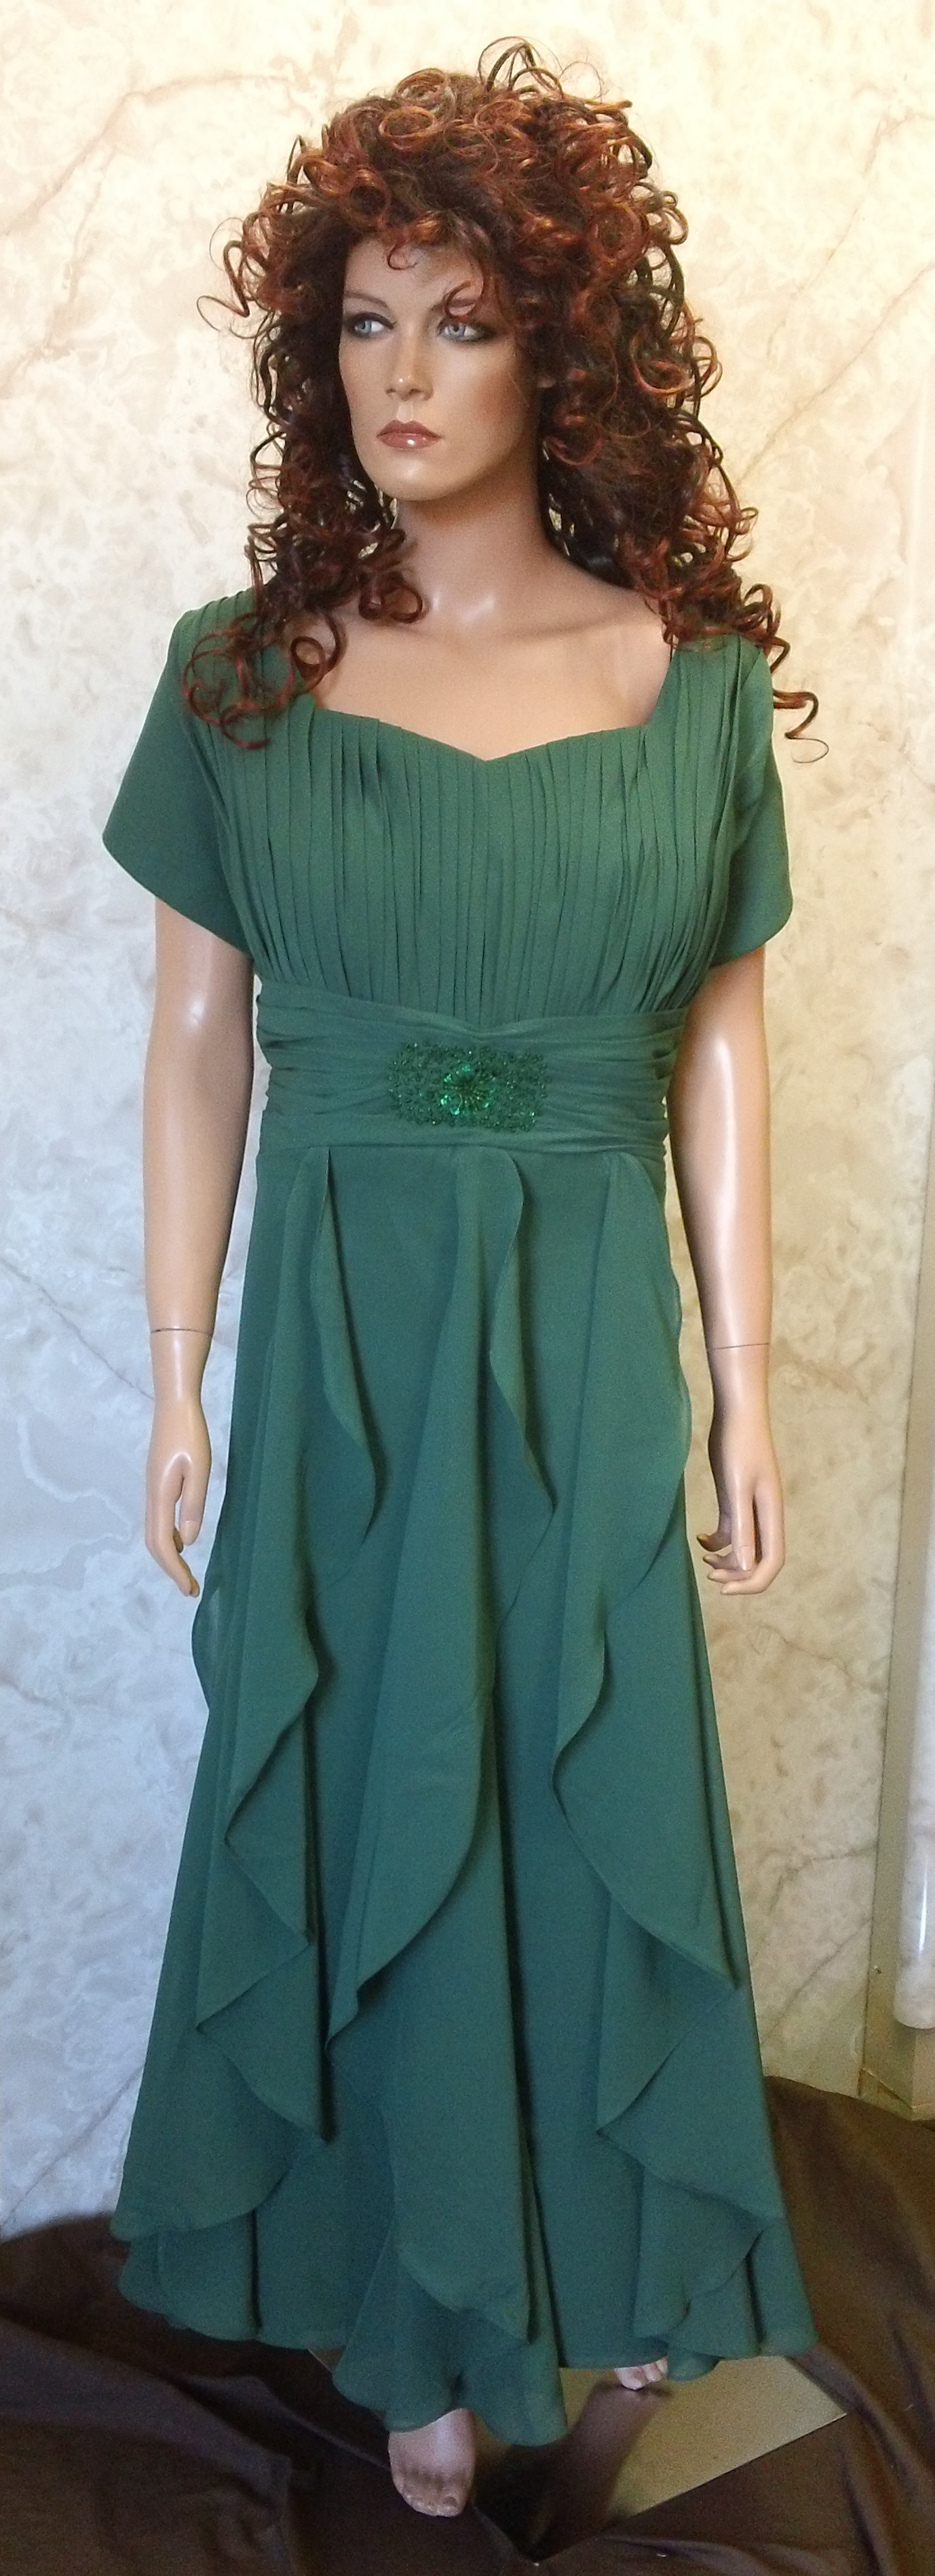 hunter green vertical ruffled bridesmaid dress